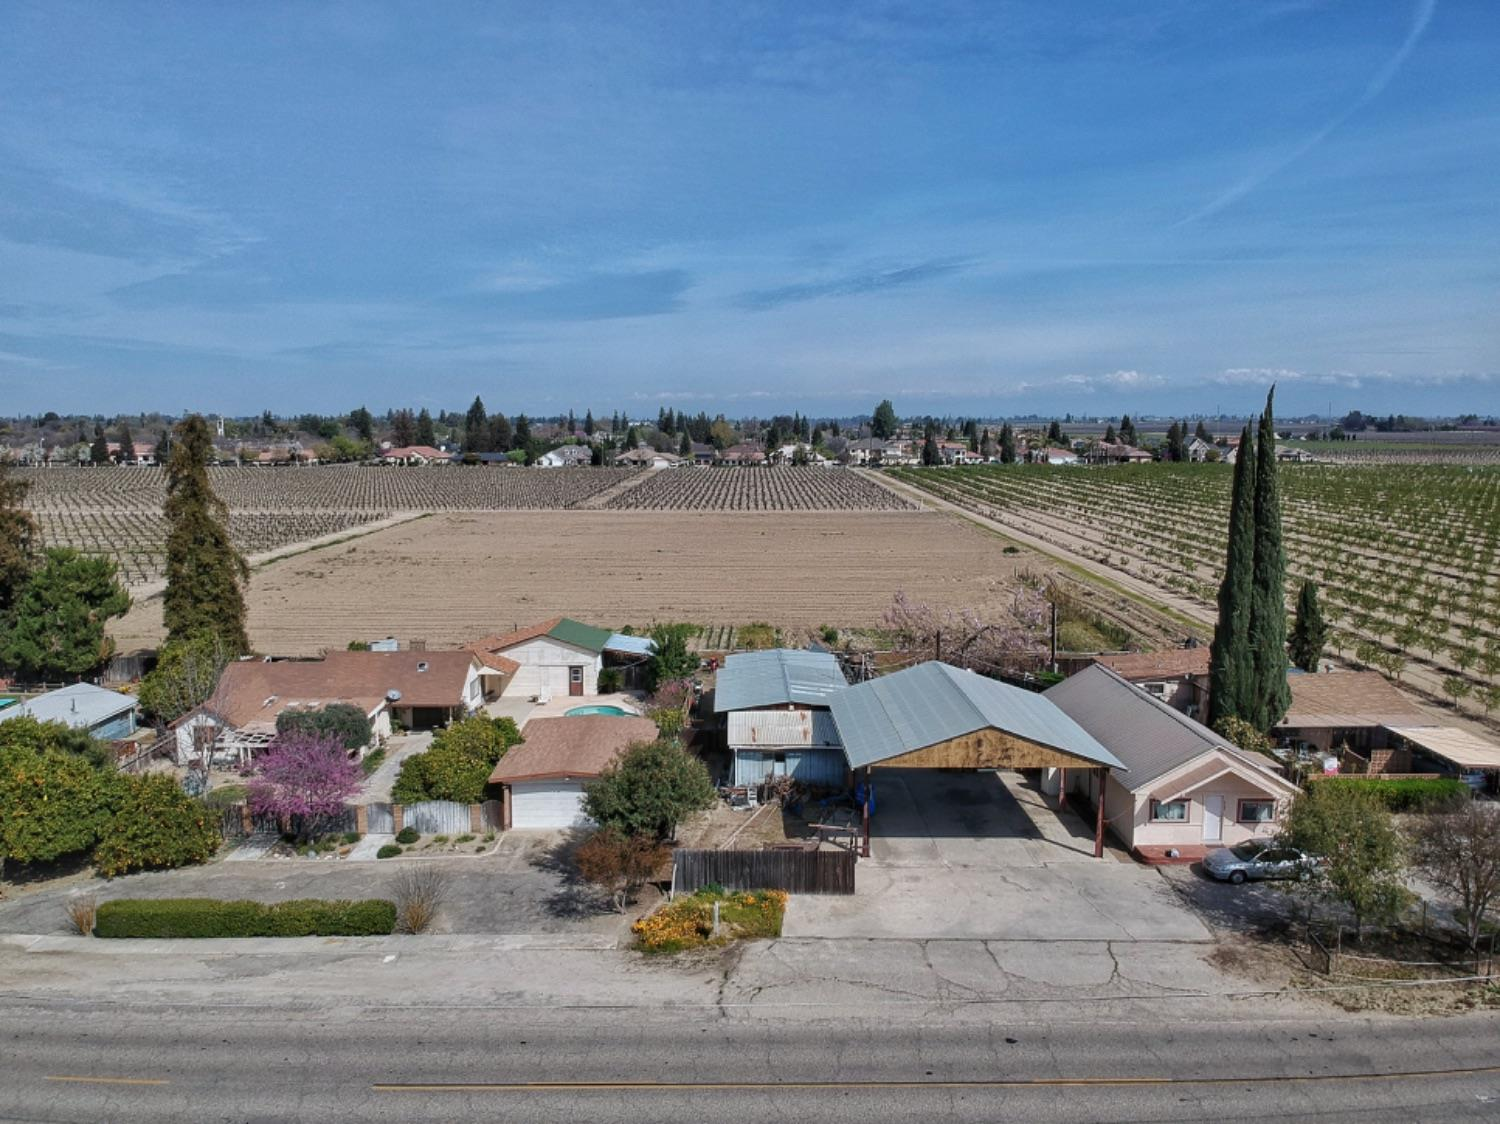 3 houses included in sale plus outbuildings and 3.67 acres open ground.  Four APN but all sold together.  All houses total 3,429+- square feet.  Built in 1920, 1940 & 1950.  Total land equals 4.51+-acres.  Buyer to verify. Live in the main house and rent the other 2 houses and lease out the land.  Drive by only without appointment.